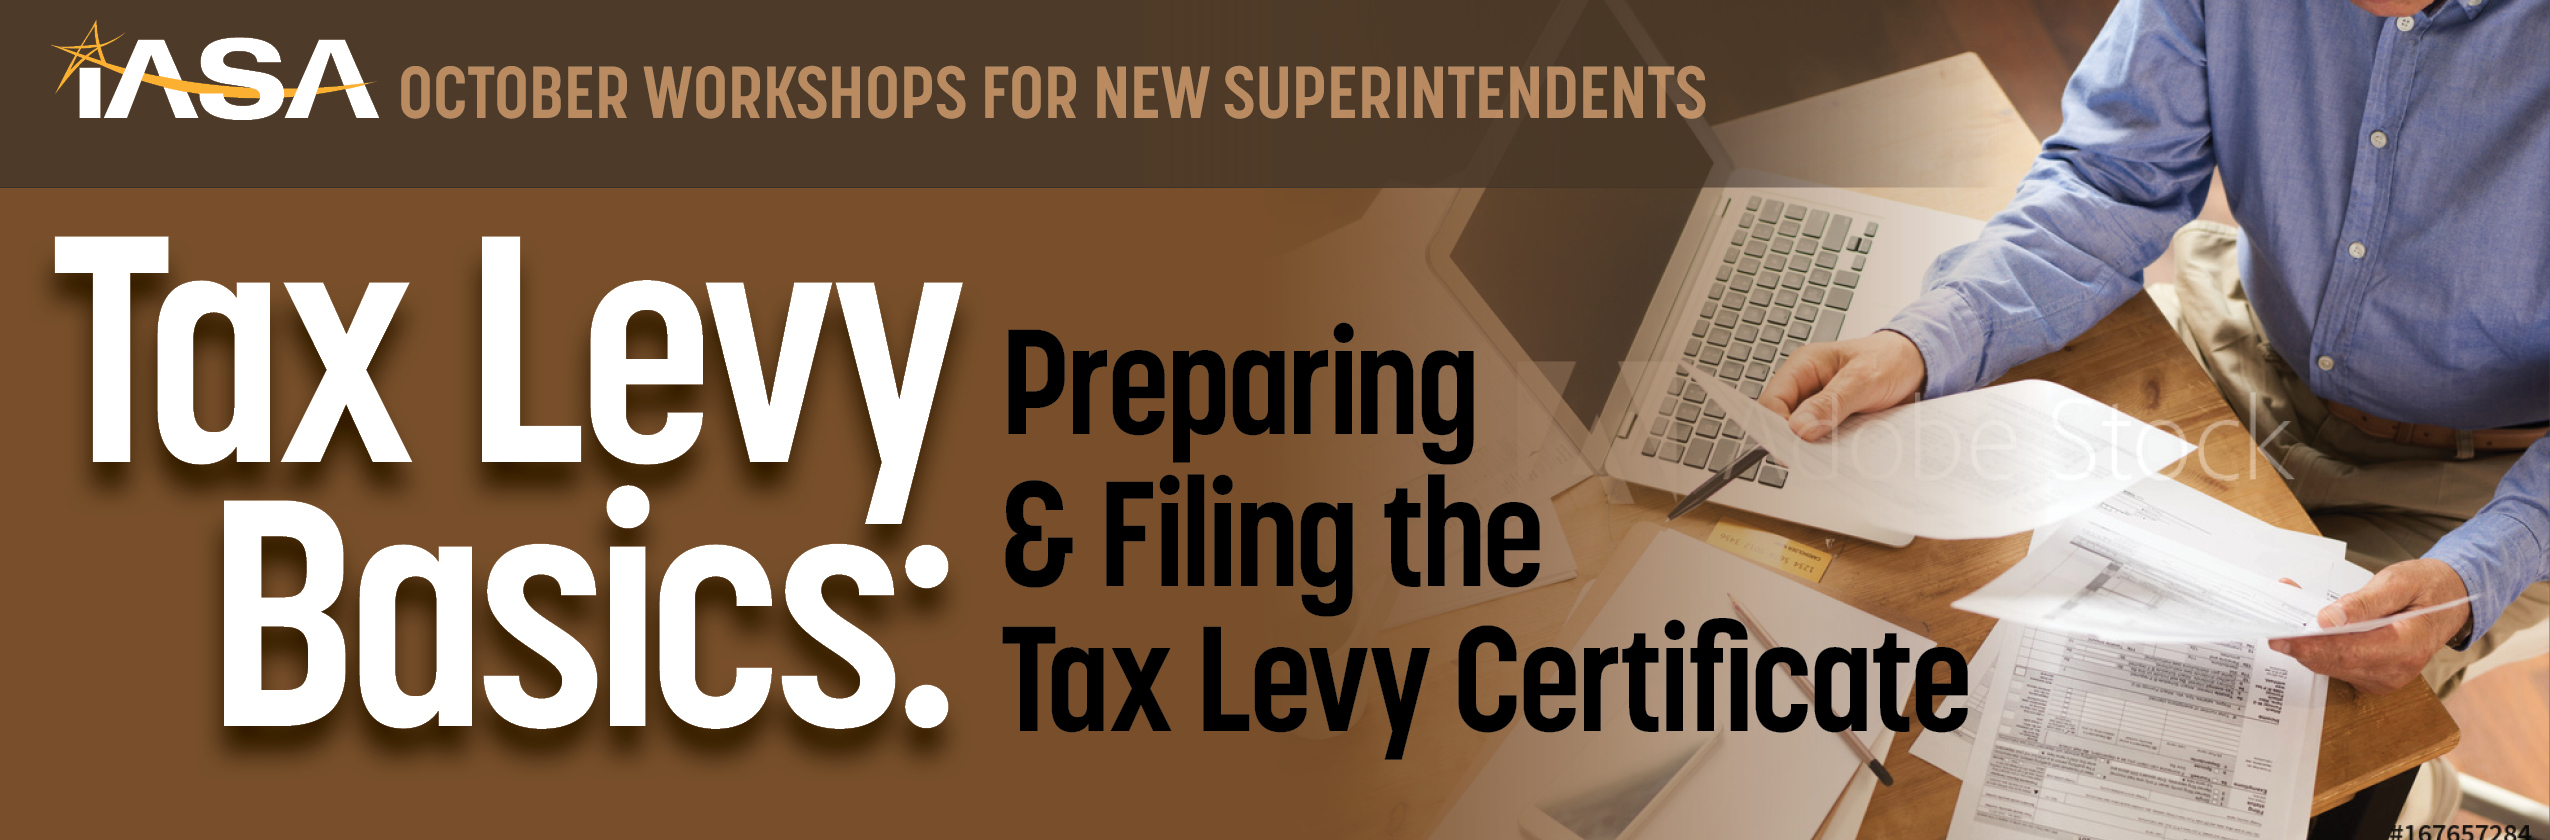 Tax Levy Basics: Preparing & Filing the Tax Levy Certificate